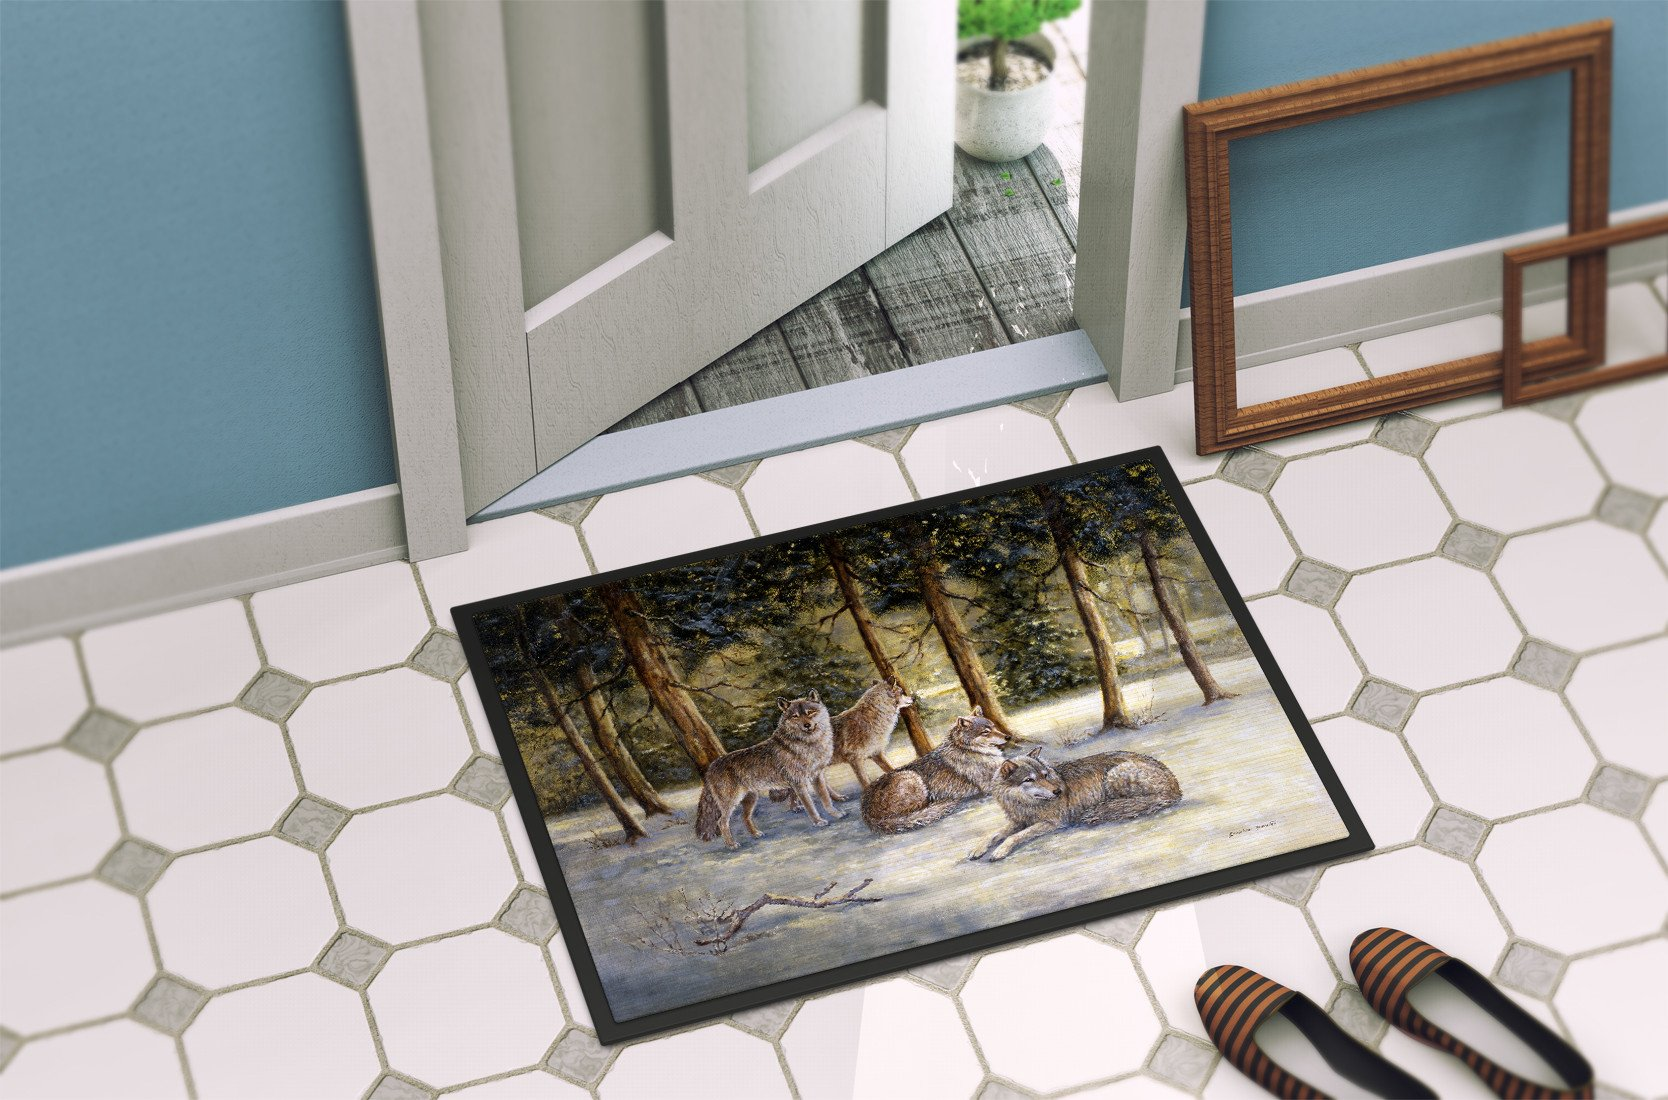 Wolves by Daphne Baxter Indoor or Outdoor Mat 24x36 BDBA0371JMAT - the-store.com